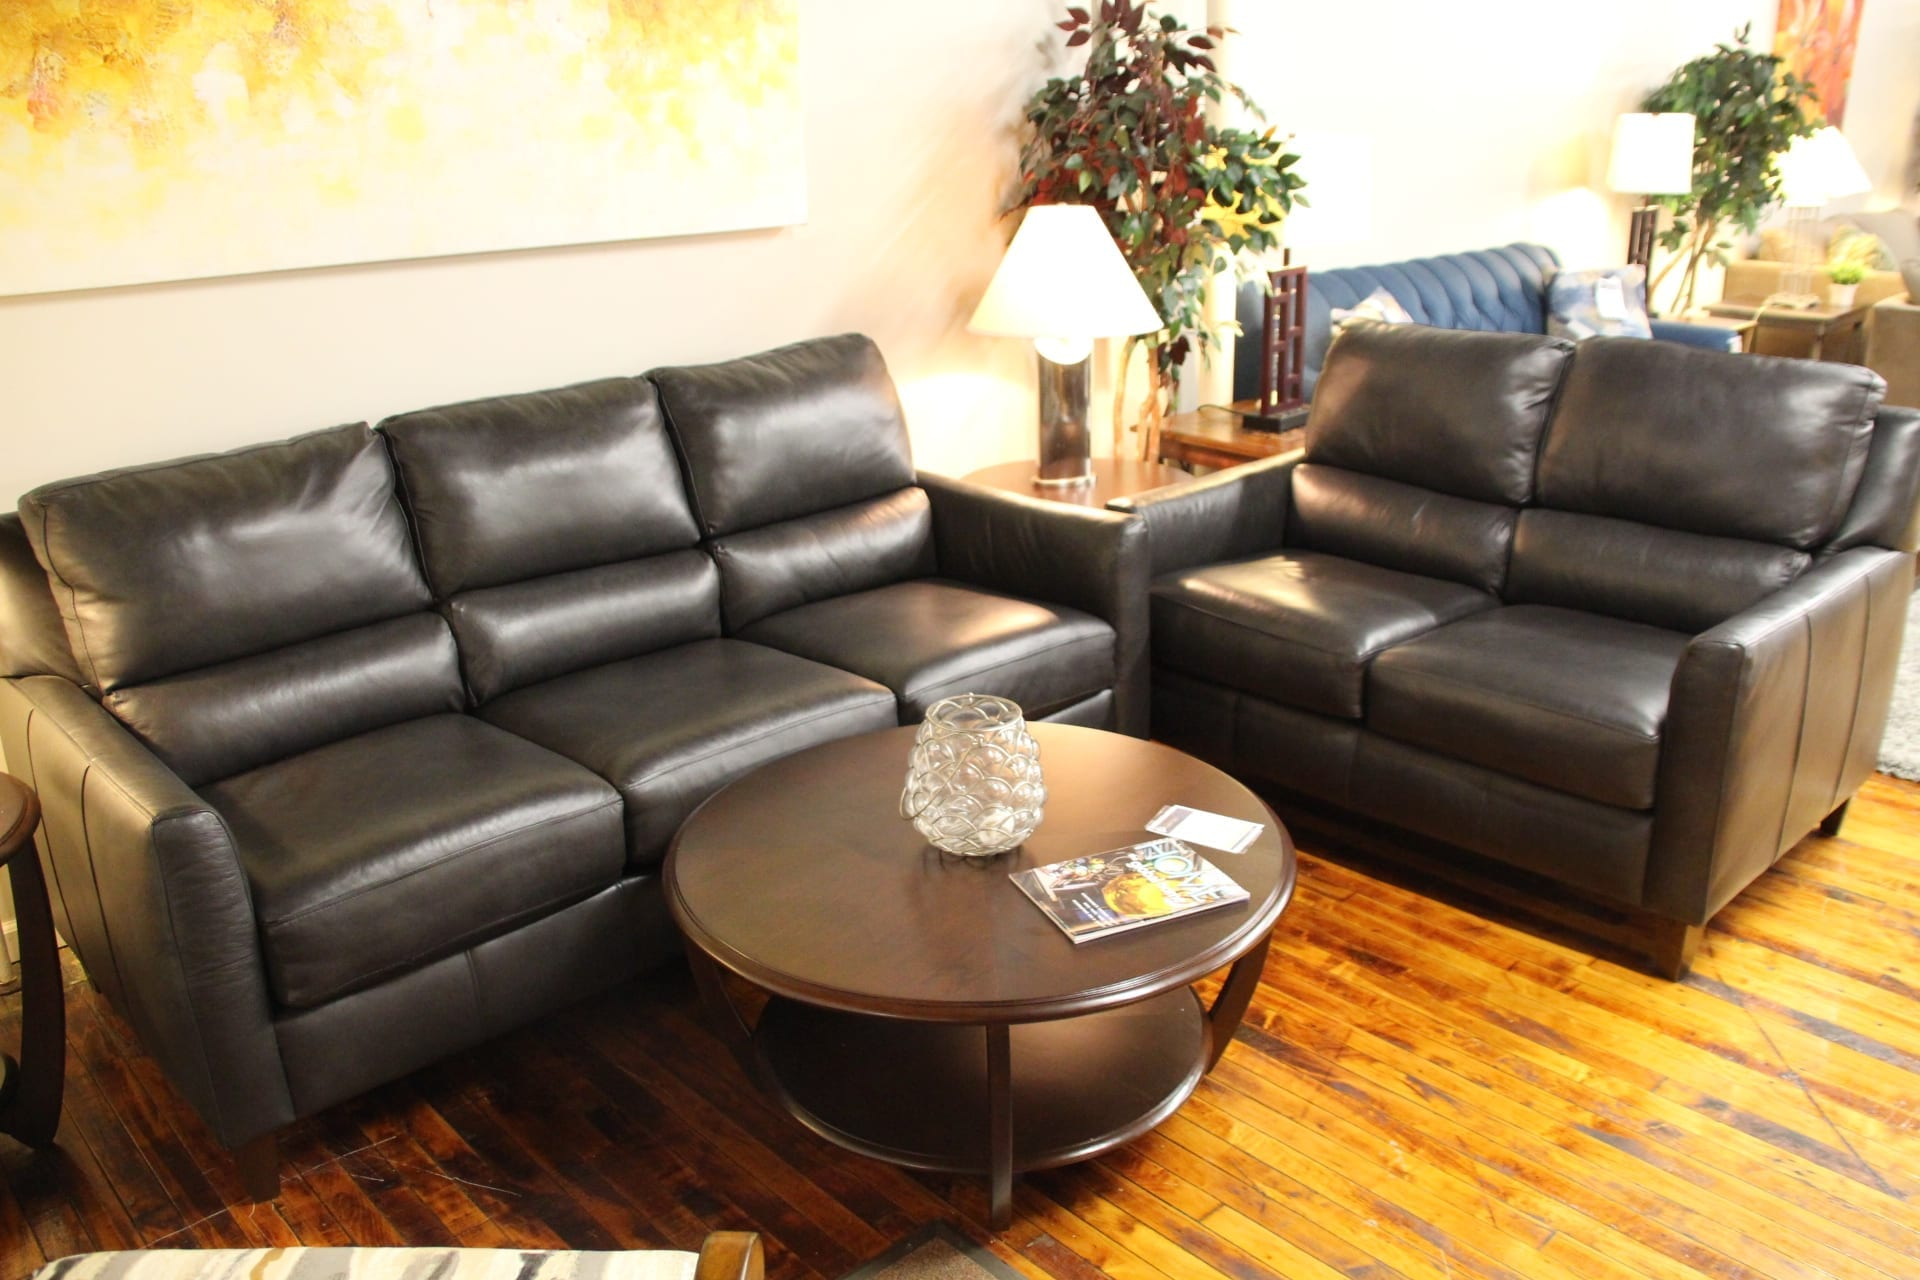 Upgrade your living room couch to leather at Pittsburgh Furniture Leasing